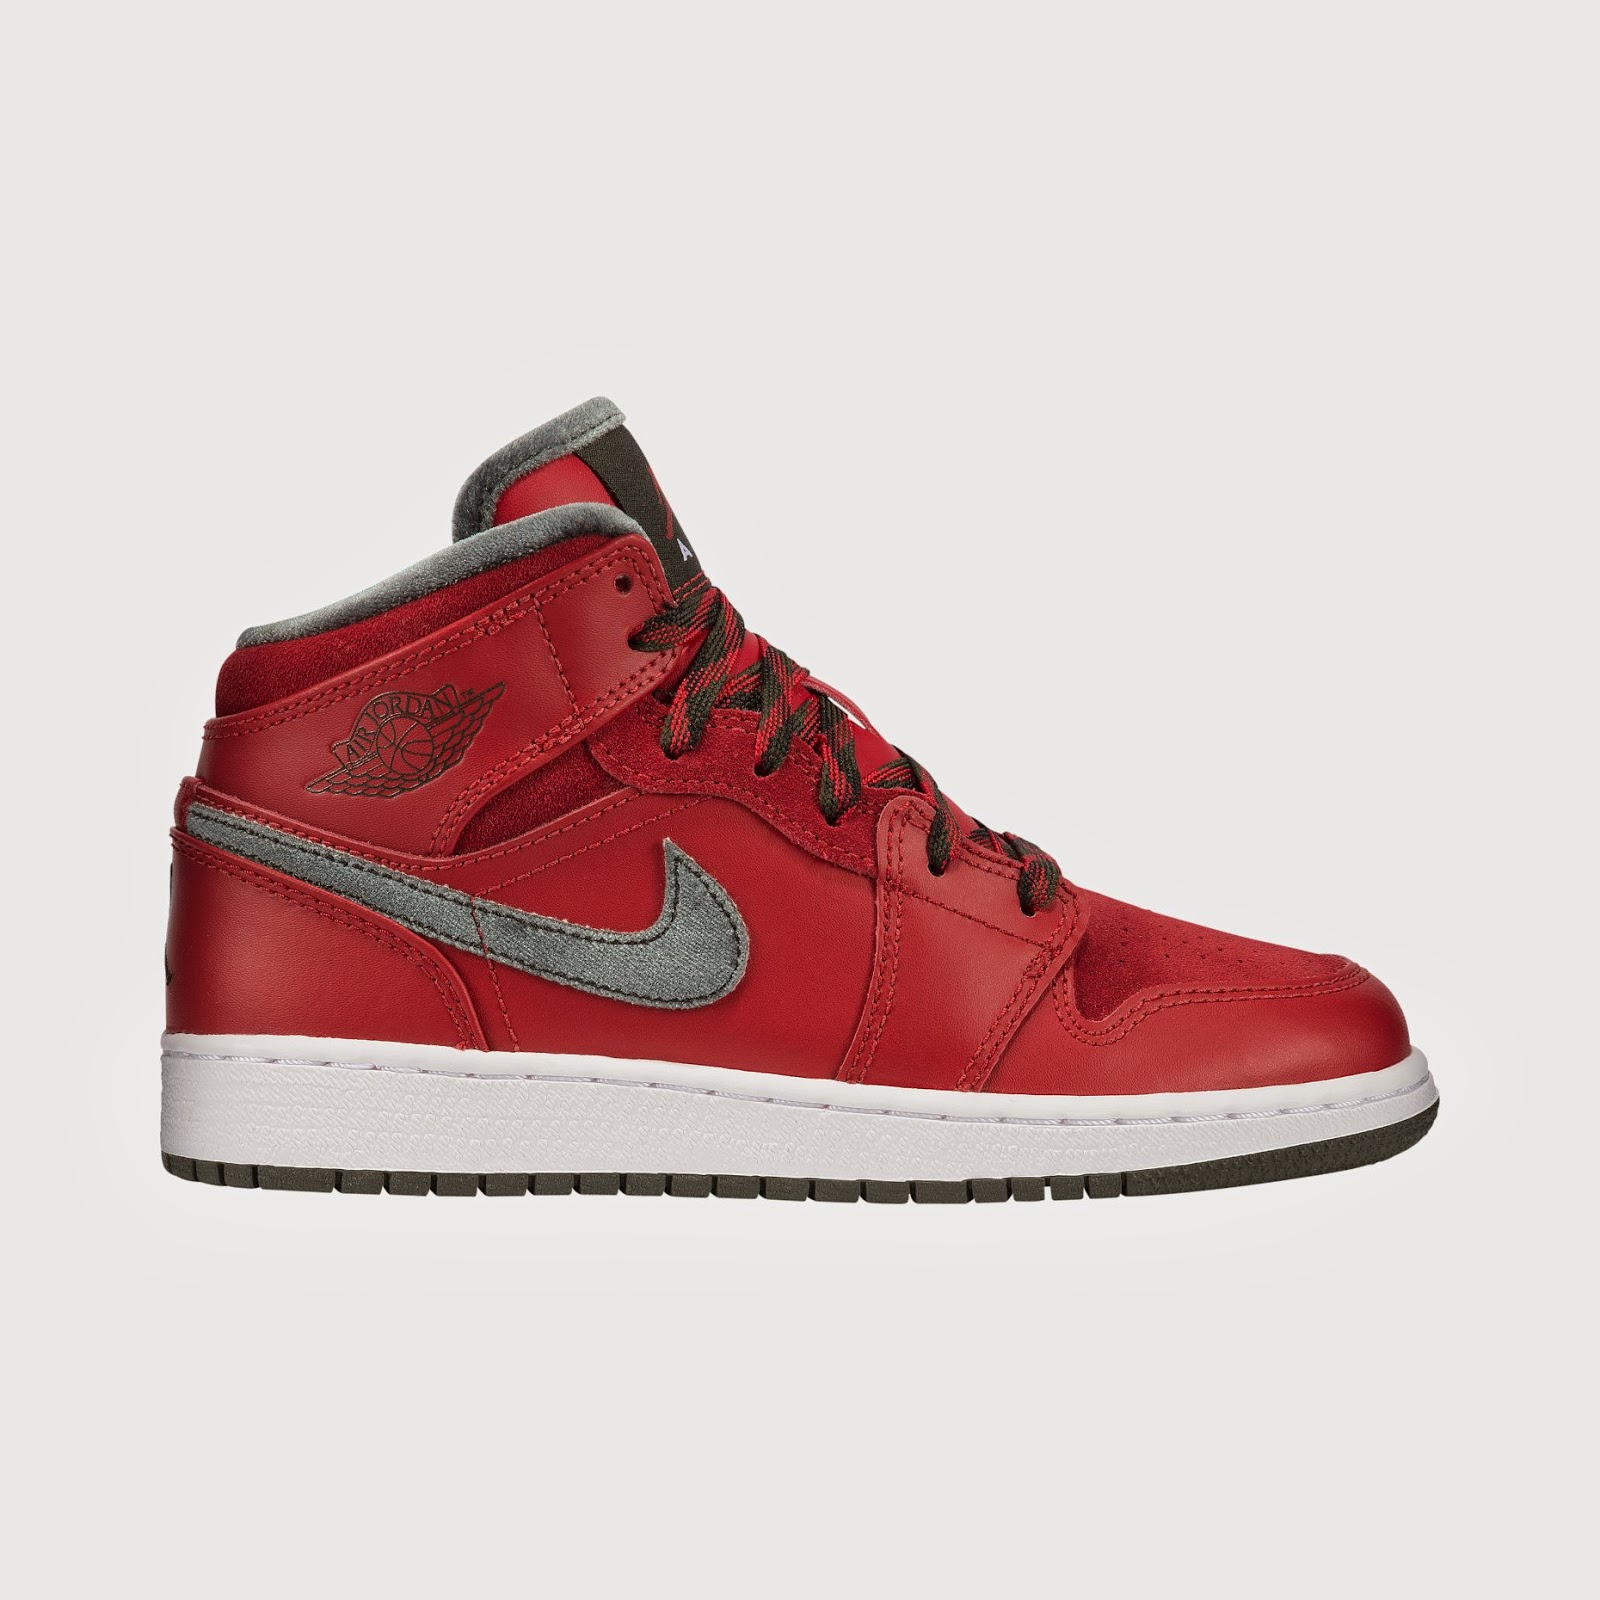 Air Jordan 1 Mid Premium Kids' Shoe # 619049 - 631